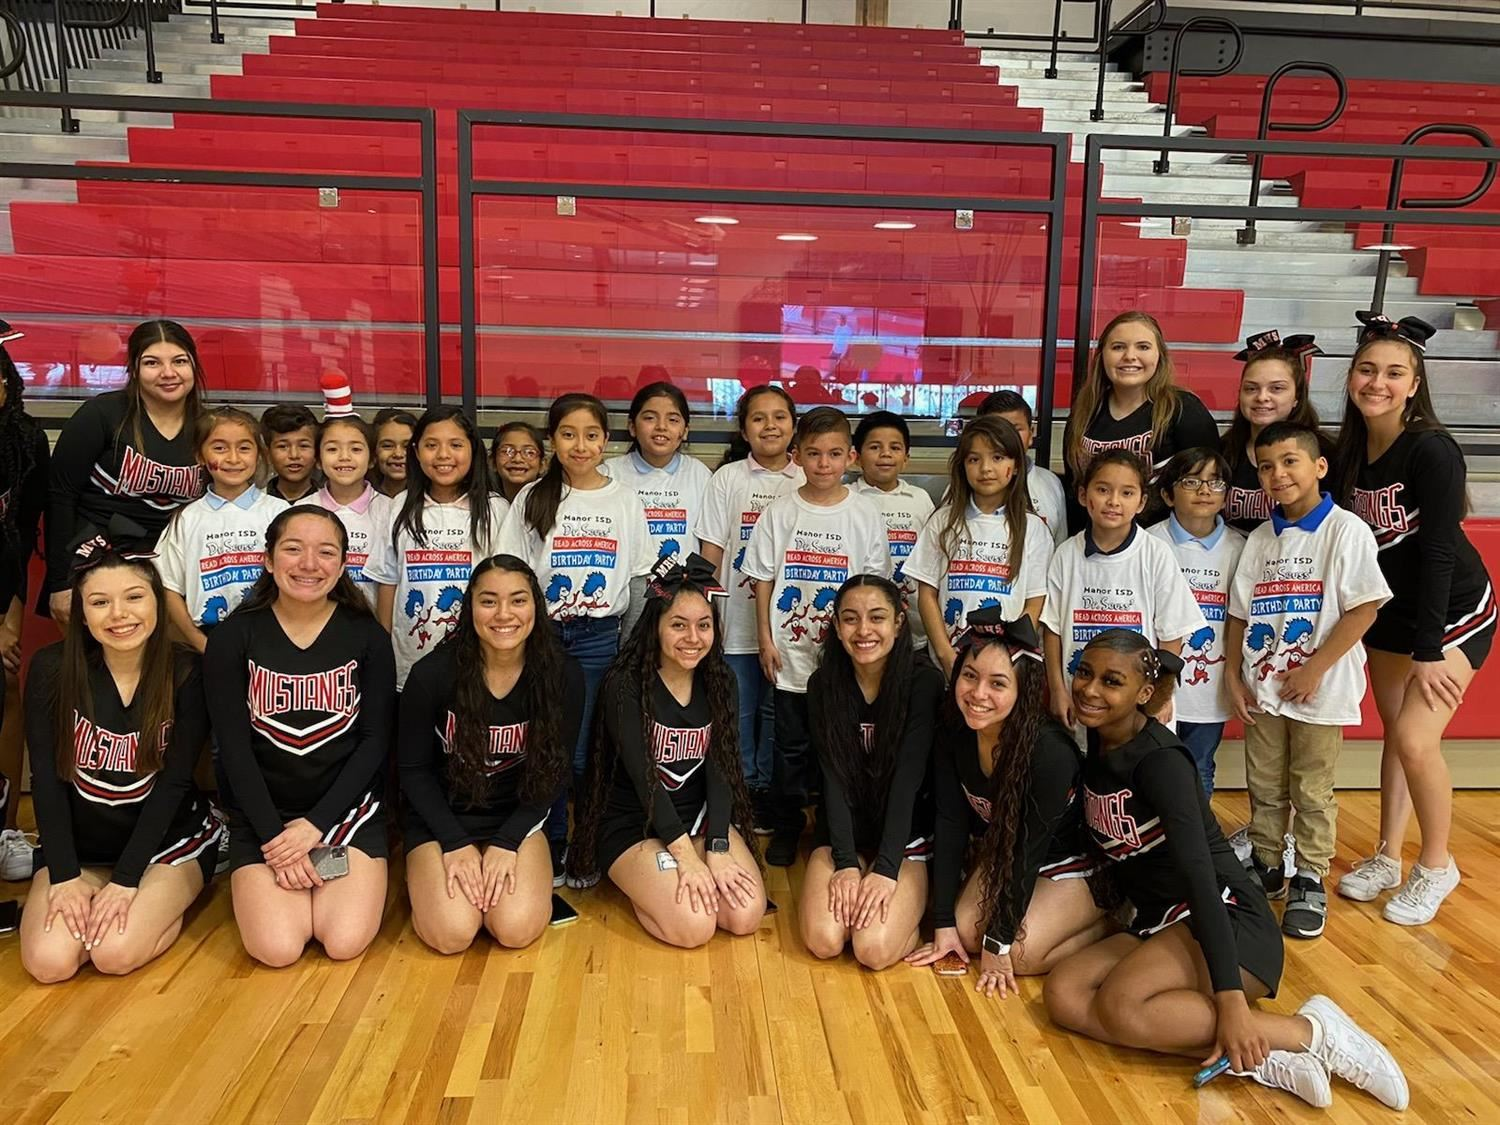 Ms. Moreno's class poses with MHS cheerleaders